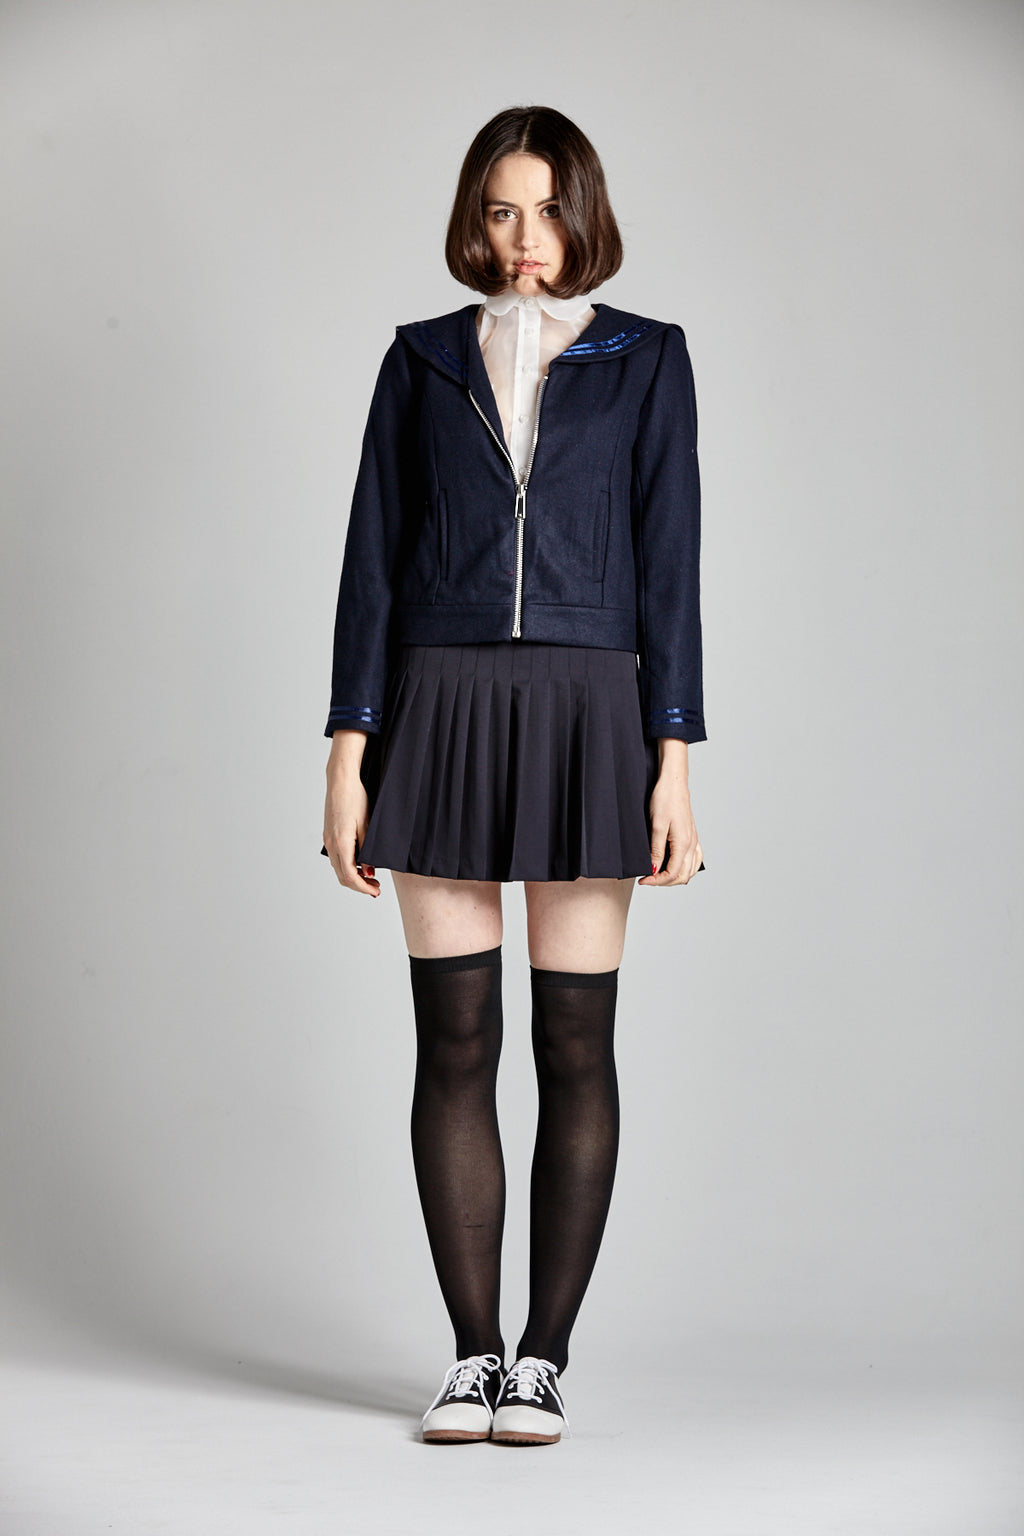 The Sailor Jacket